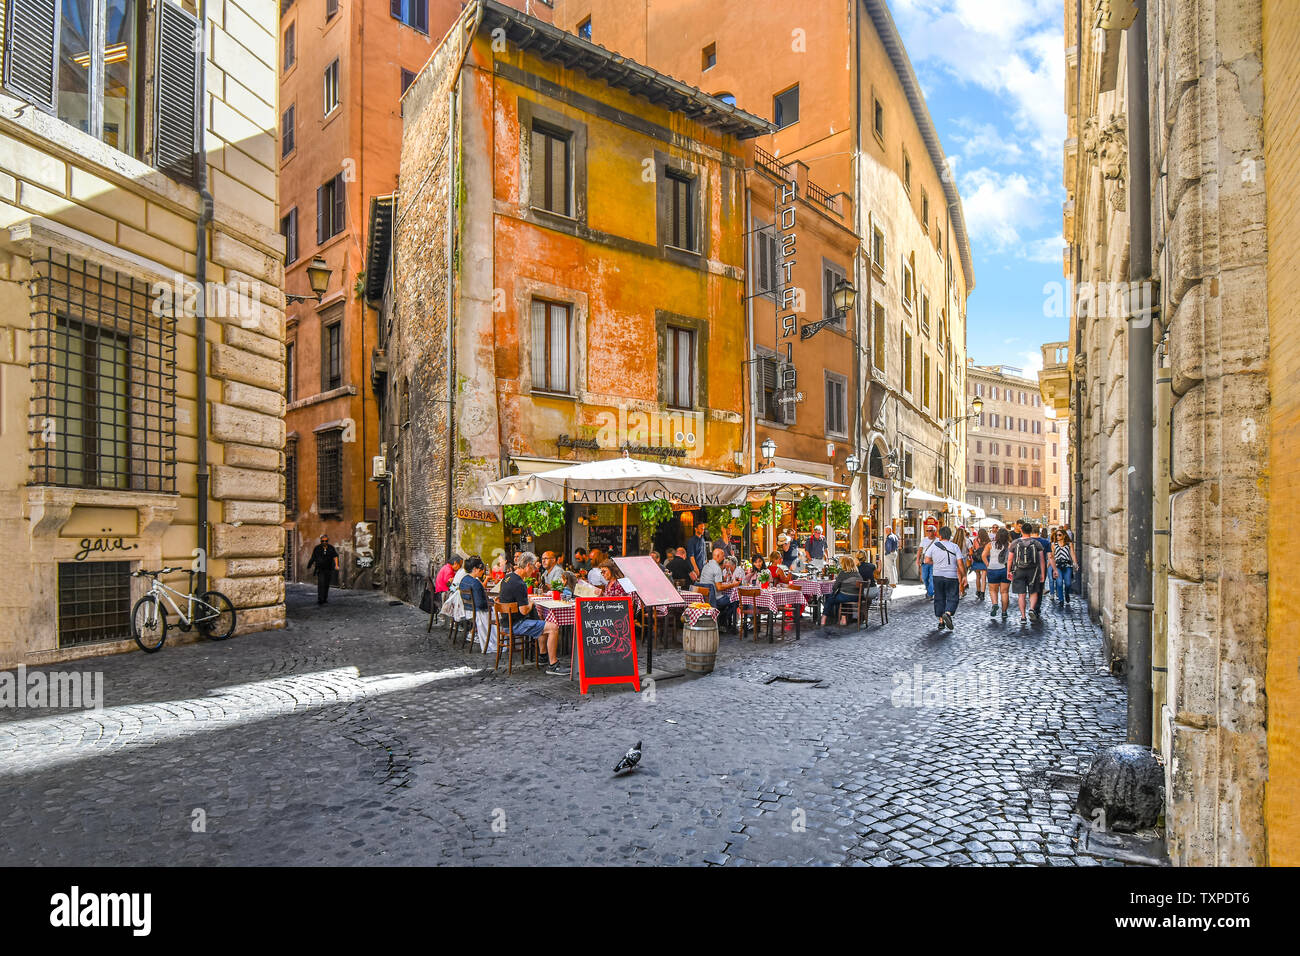 Tourists enjoy lunch on a summer day at an Italian sidewalk cafe restaurant in an alley near the historic center of Rome, Italy. Stock Photo